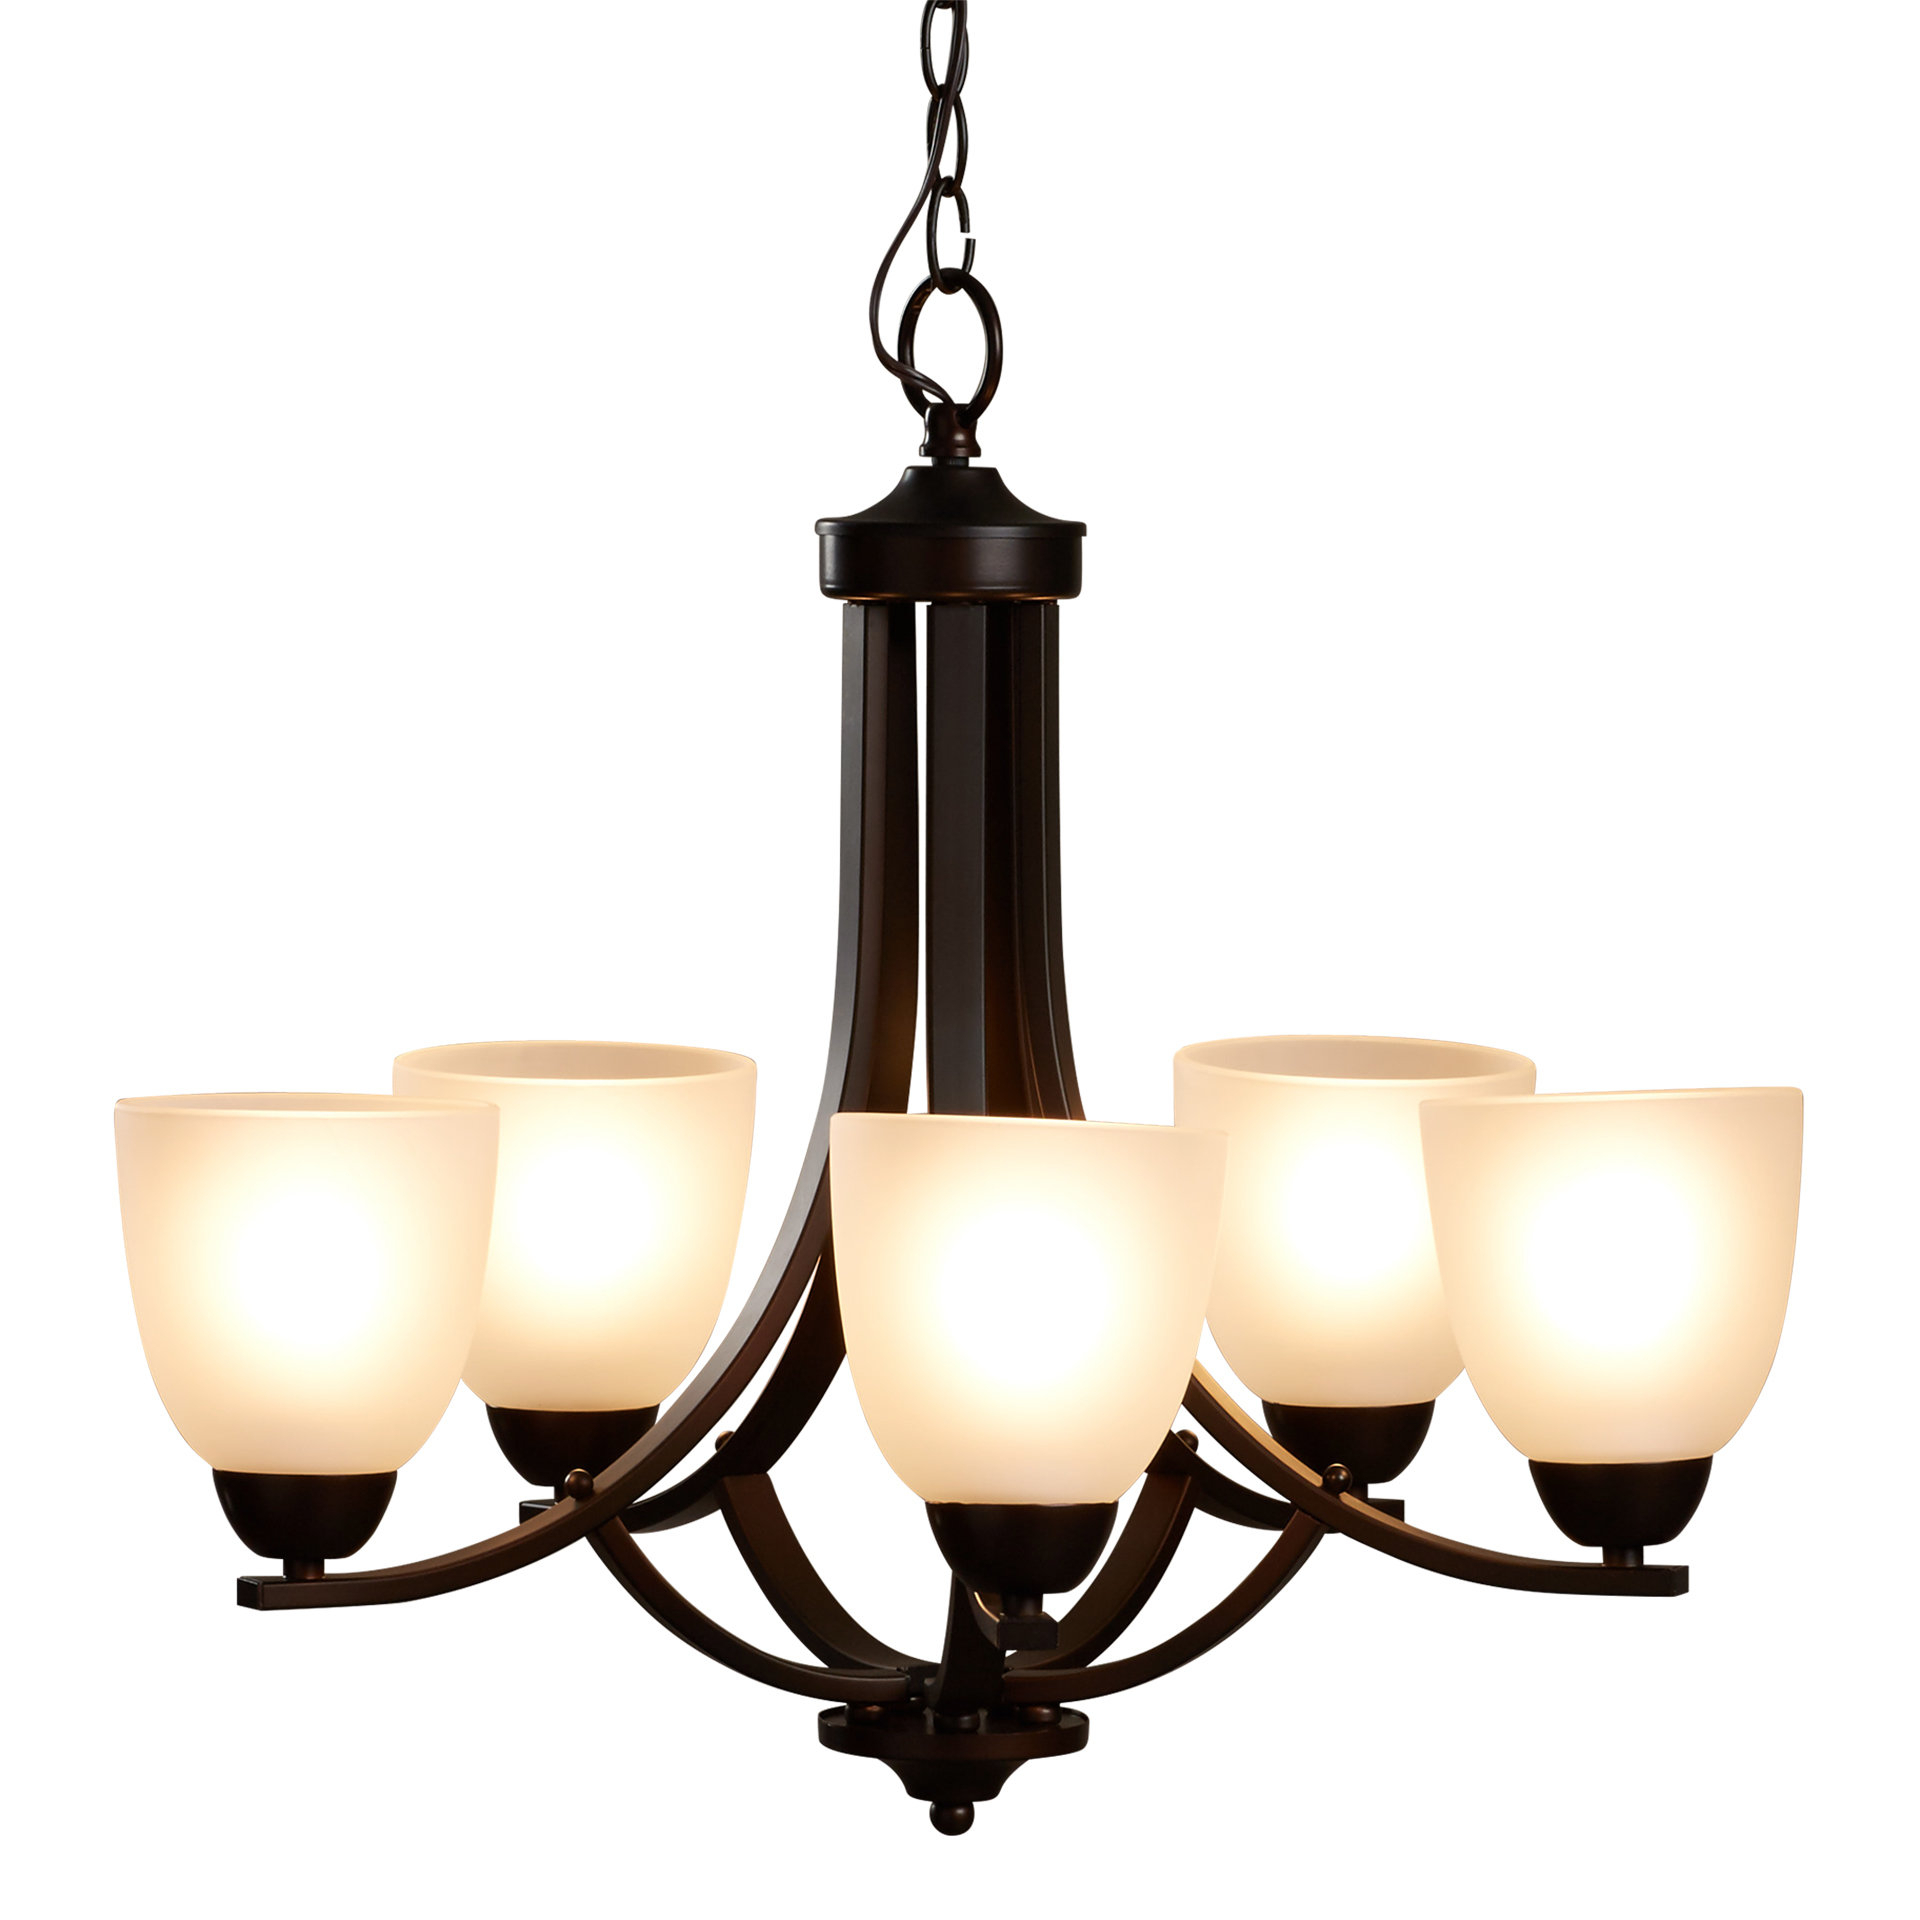 Andover Mills Hayden 5 Light Shaded Chandelier Within Widely Used Gaines 5 Light Shaded Chandeliers (View 1 of 20)